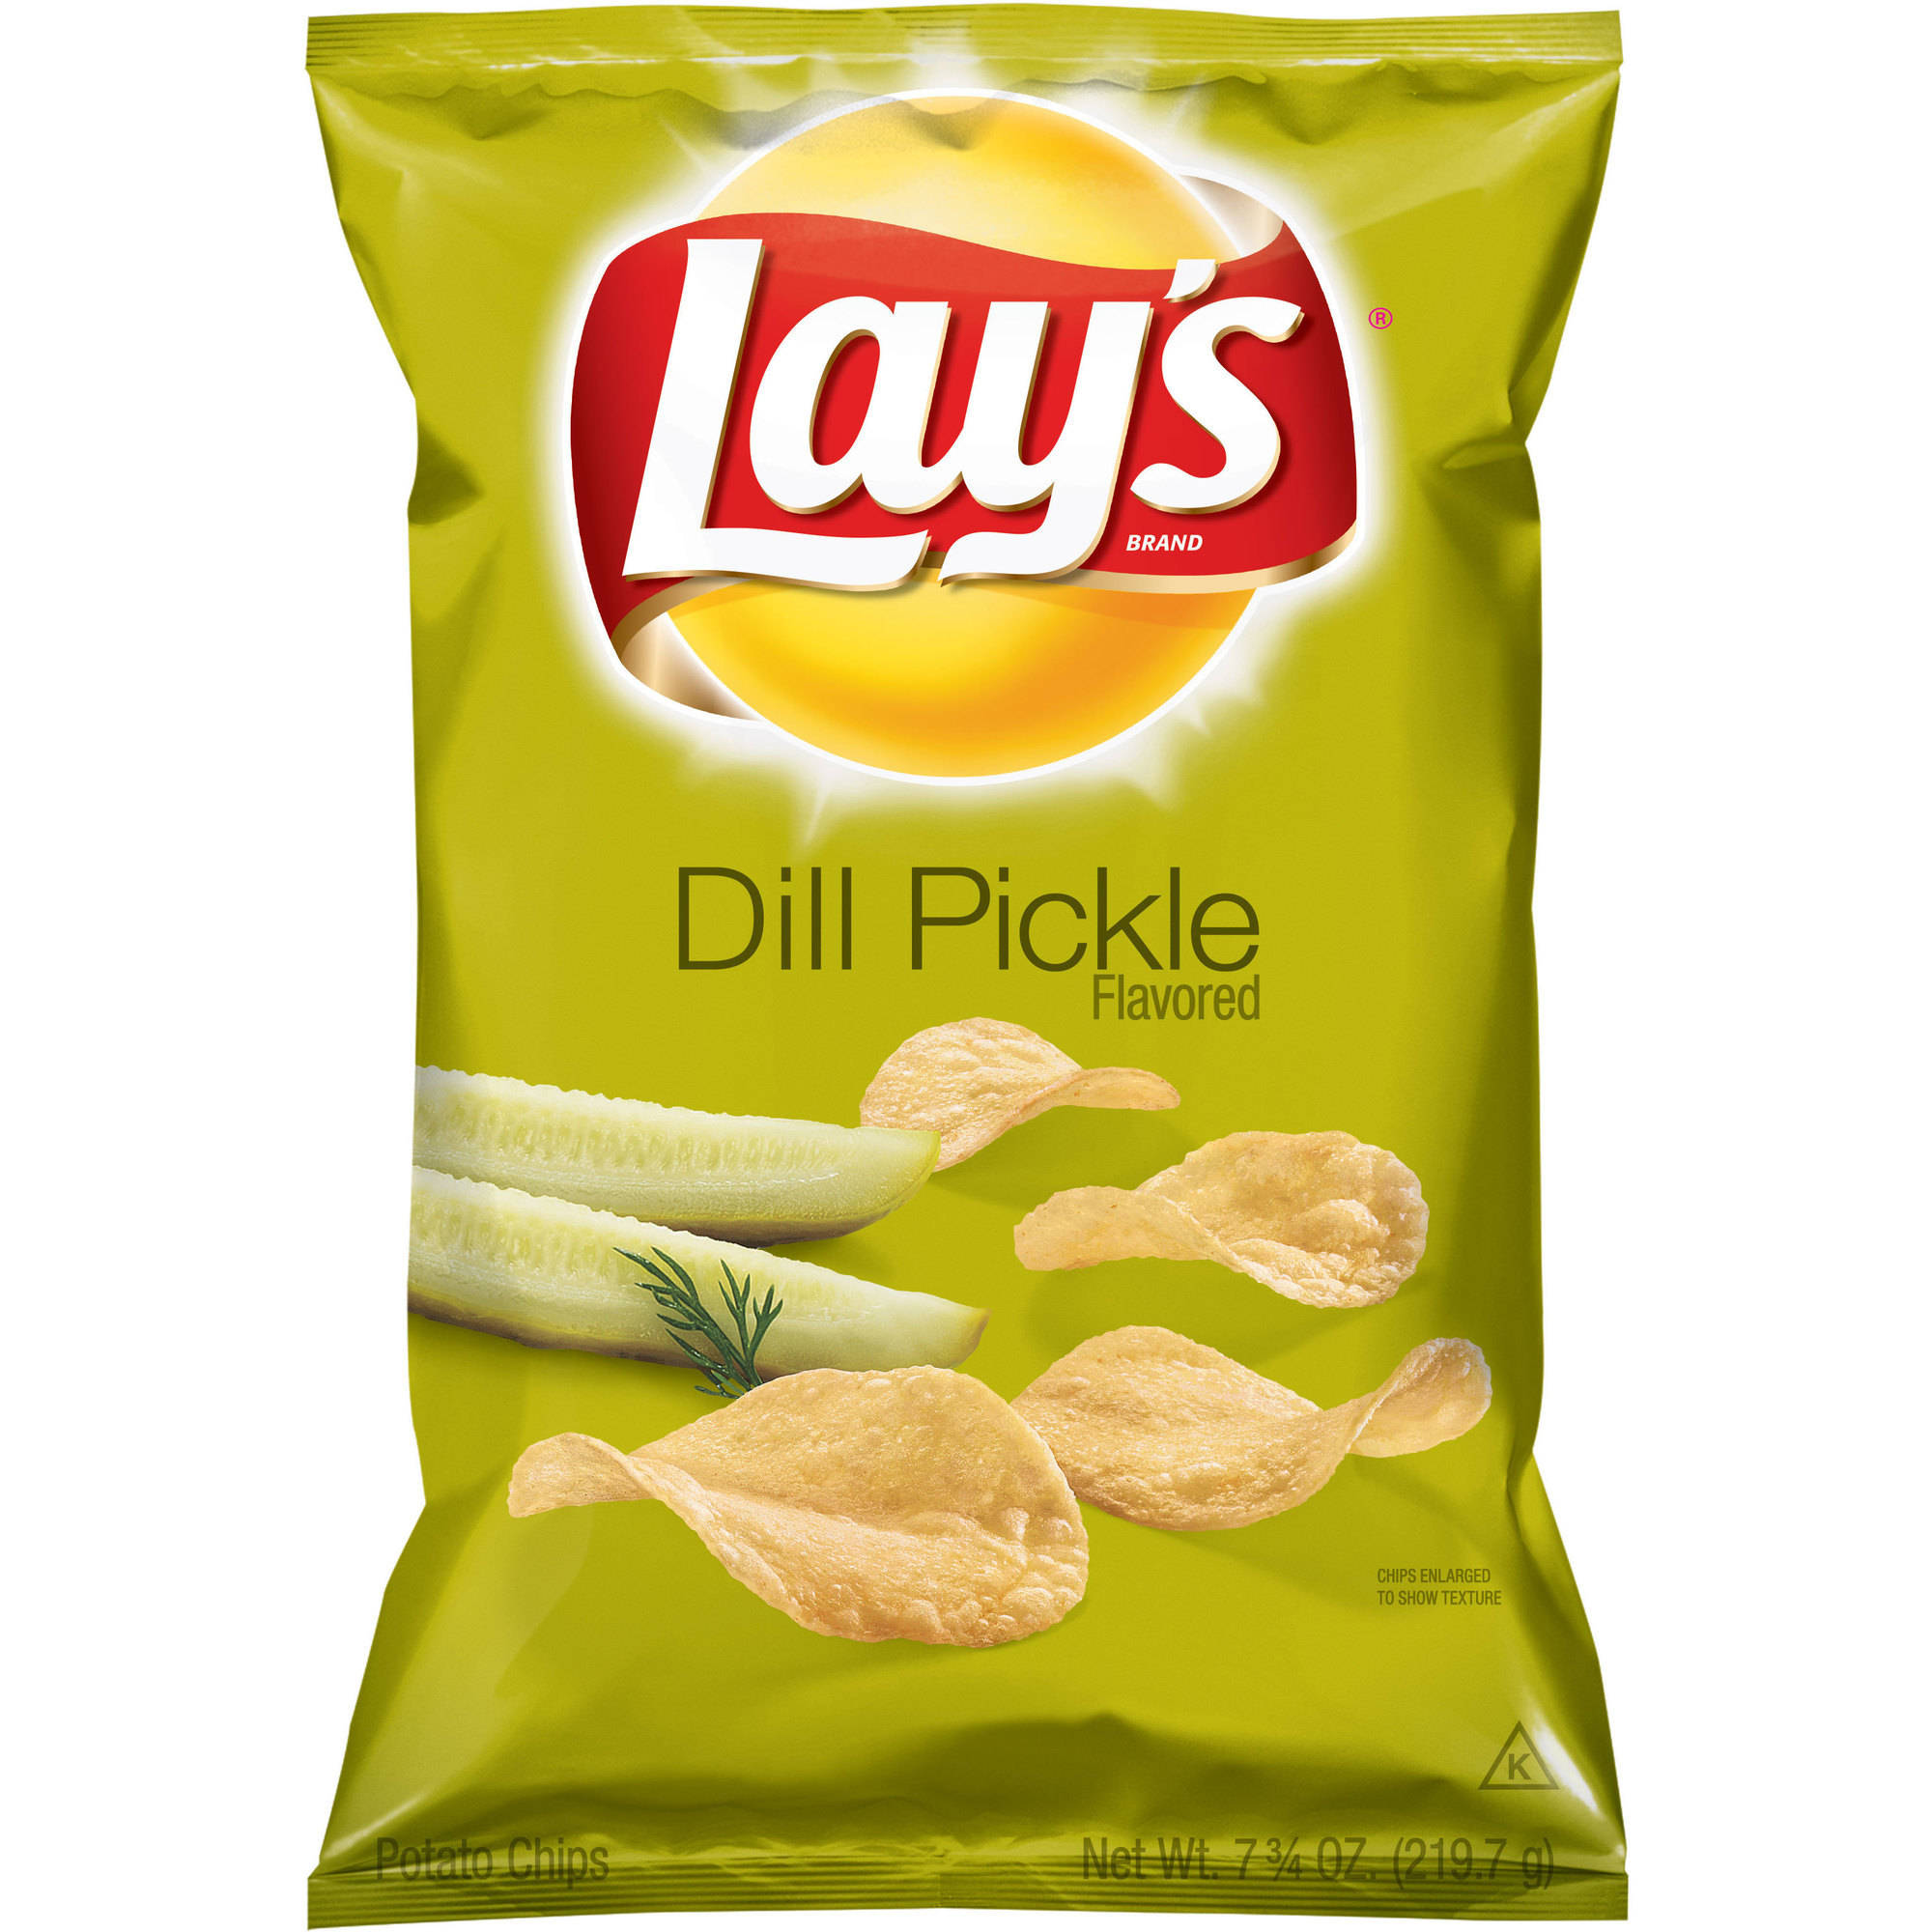 Lays Dill Pickle Flavored Potato Chips, 7.75 oz.